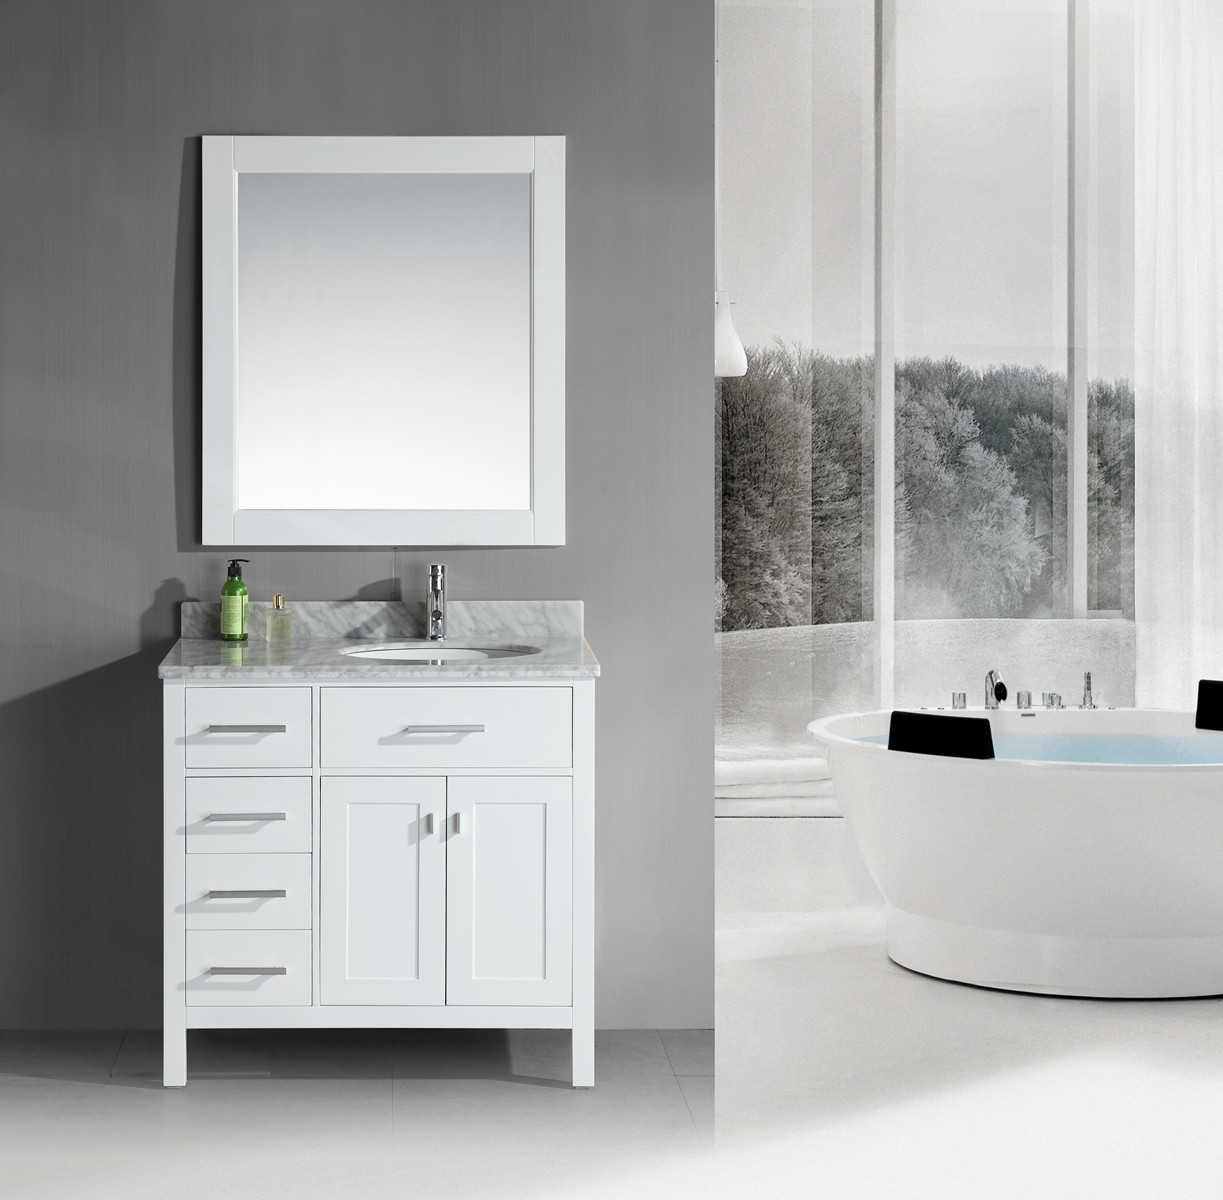 Design Element Dec076d W L London 36 Inch Single Sink Vanity Set In White Finish With Drawers